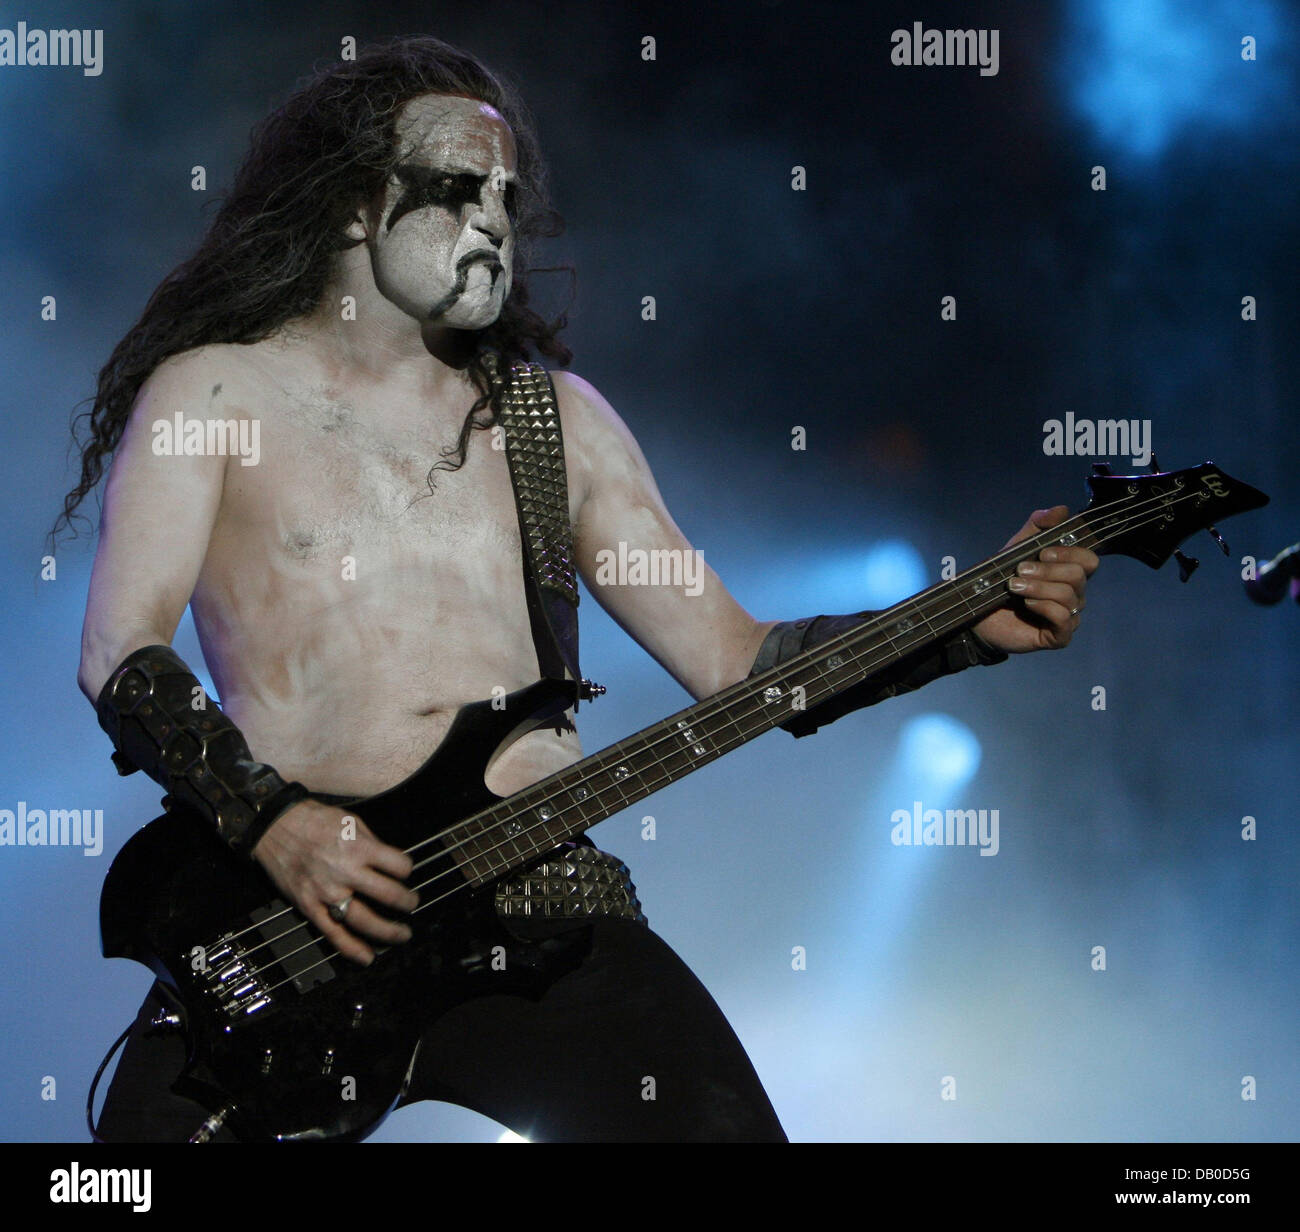 The bassist of the Norwegian black metal band 'Immortal' Apollyon is pictured on stage at the Wacken Open - Stock Image